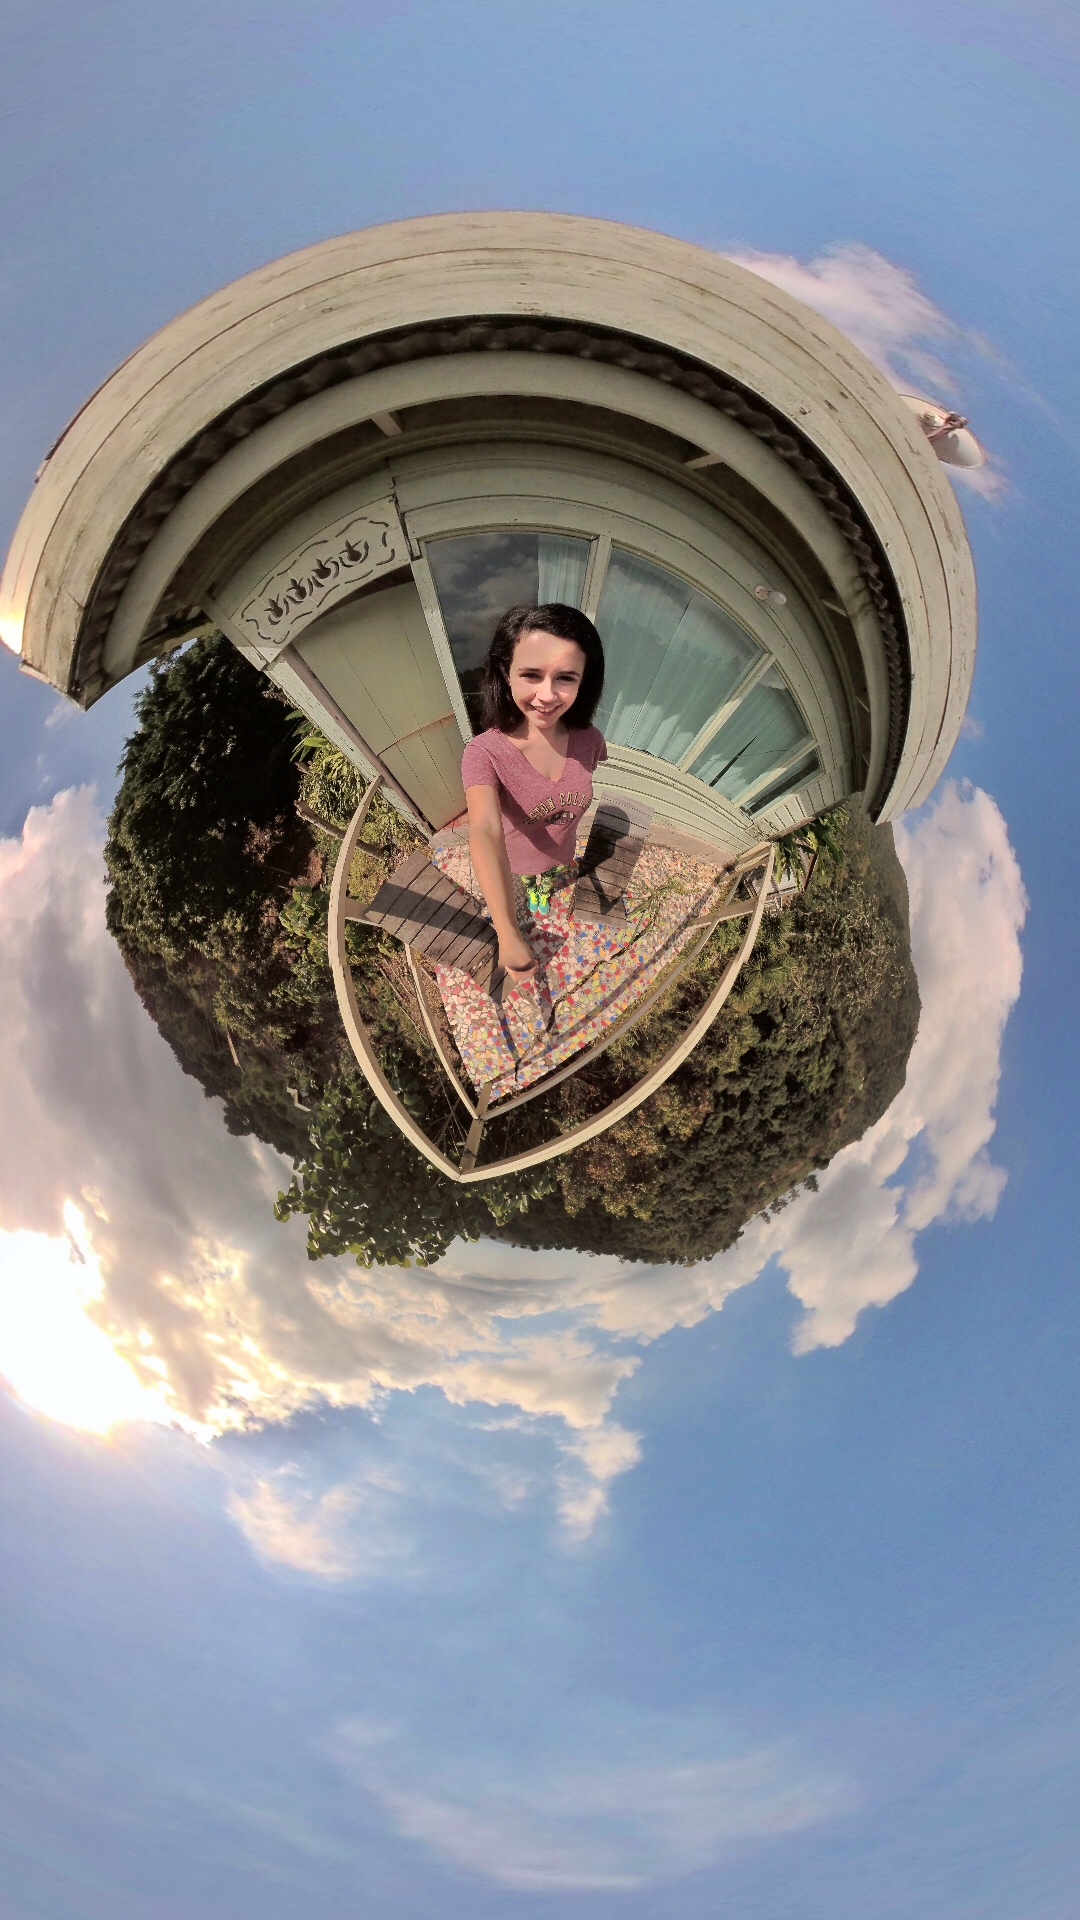 Jamaica Tiny Planet 360 photo